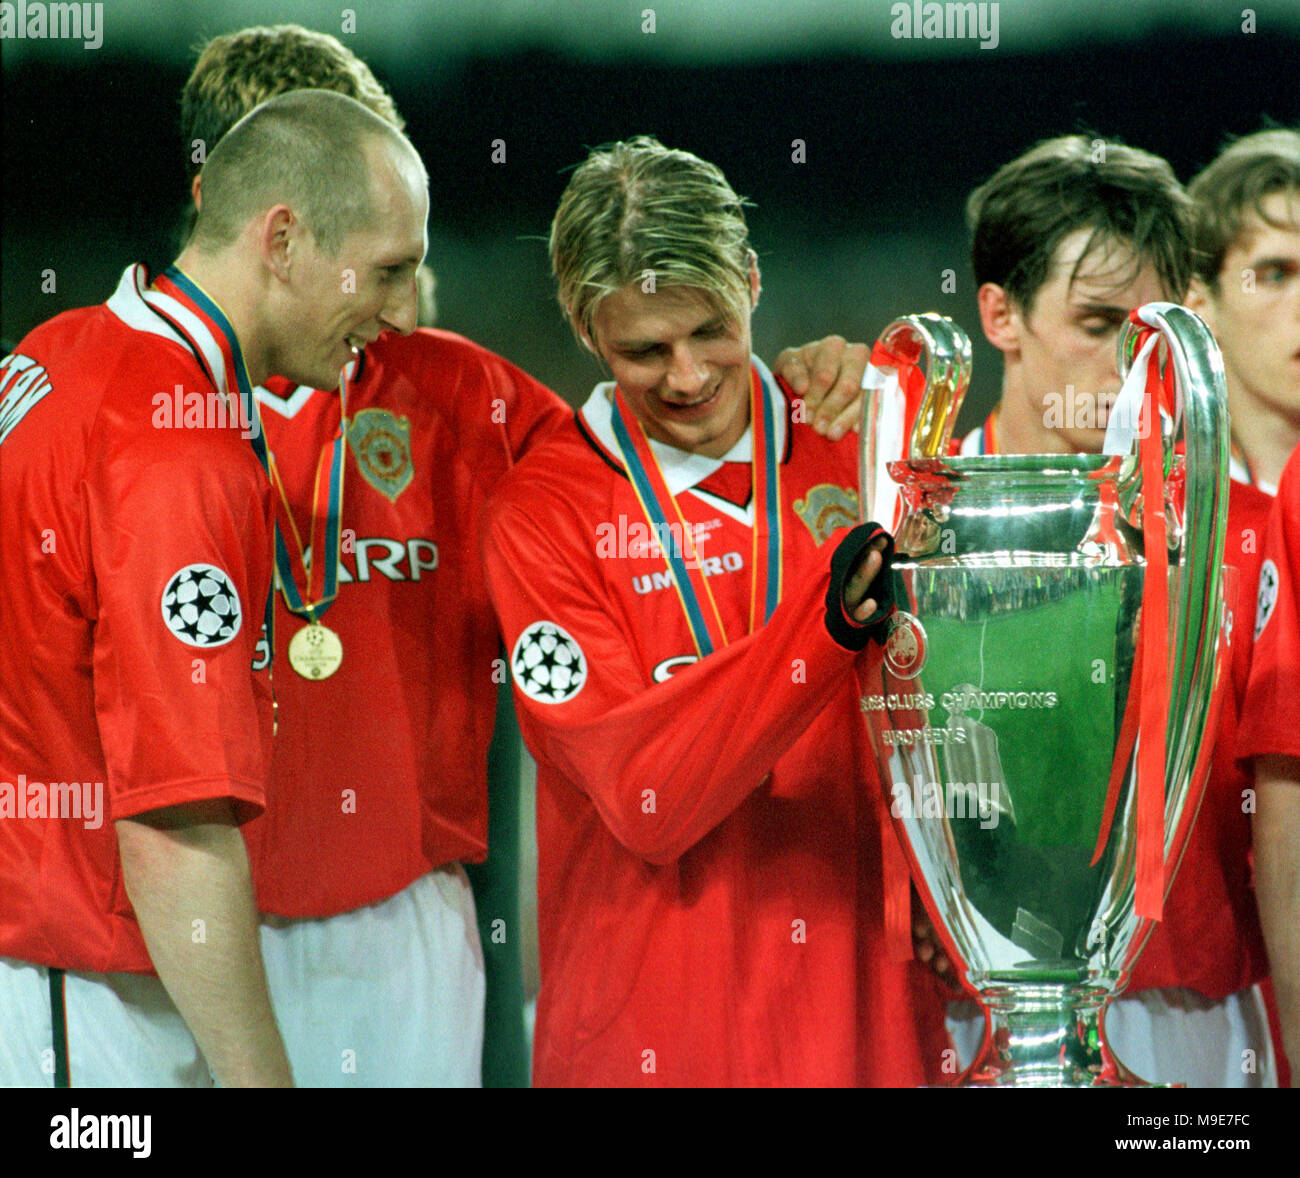 Liverpool Barcelona V S Man Unt Real Madrid: Stadium Camp Nou, Barcelona, Spain 26.5.1999 UEFA